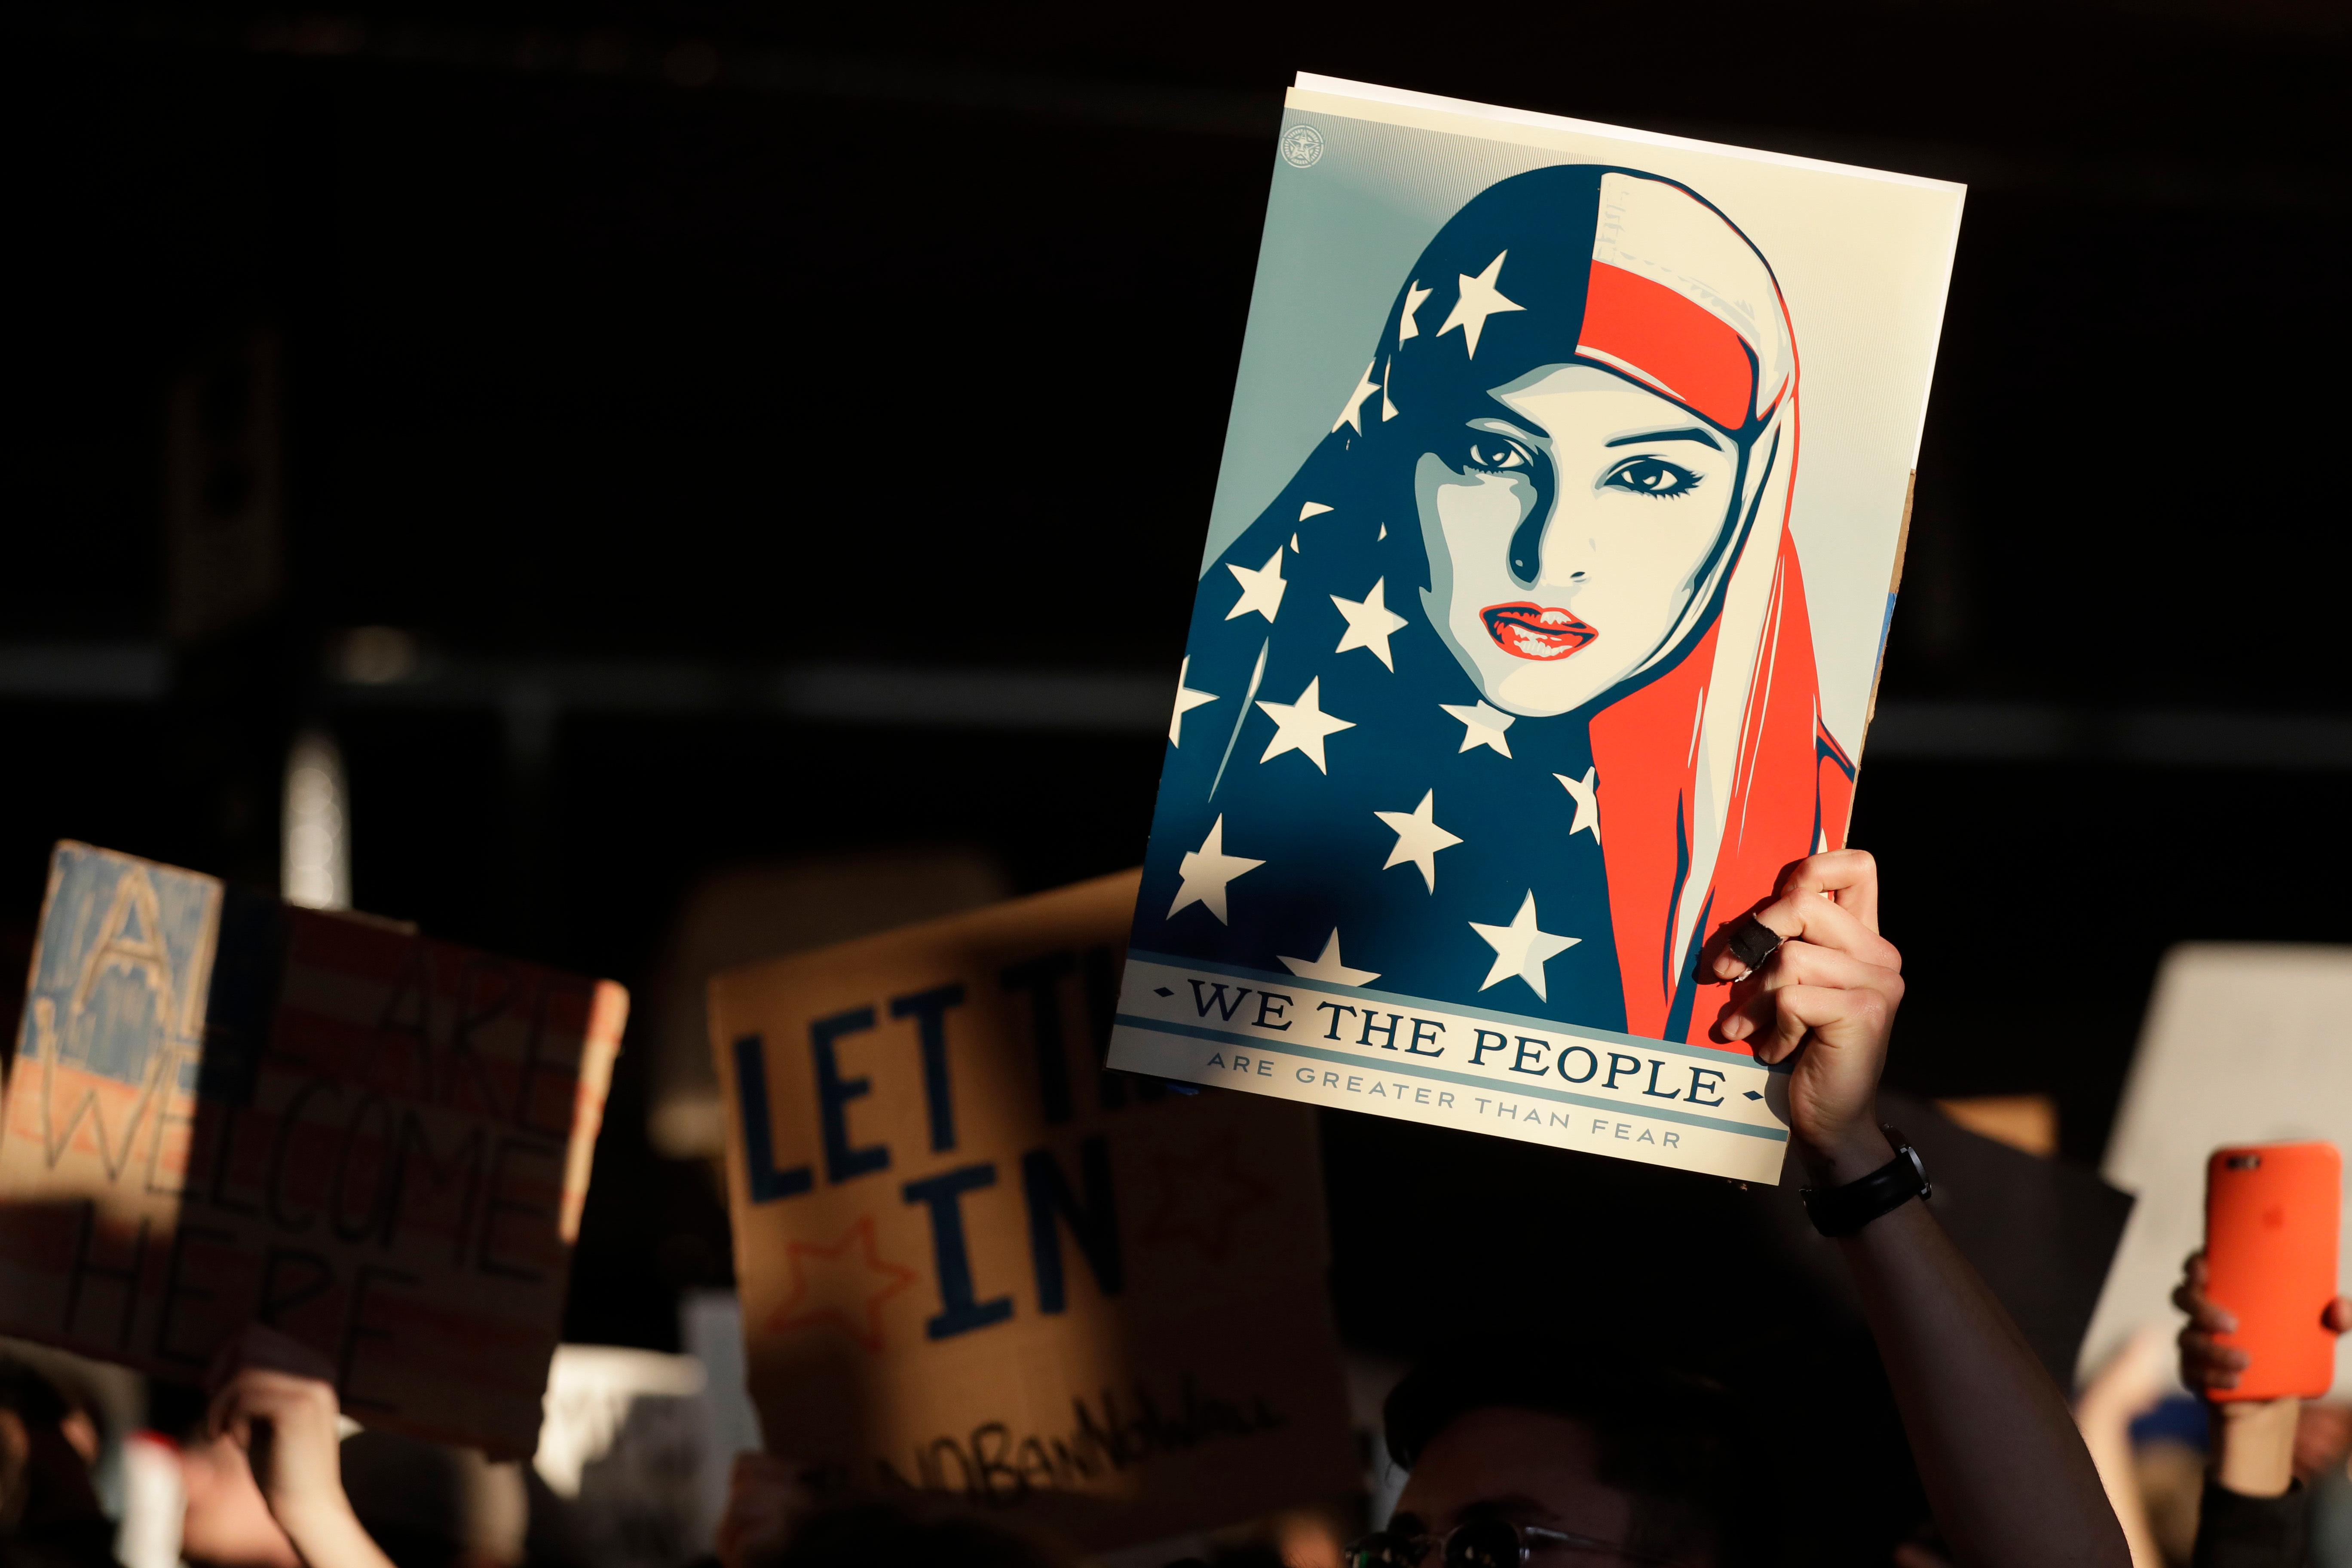 FILE - In this Jan. 28, 2017, file photo a protester holds a sign at San Francisco International Airport during a demonstration to denounce President Donald Trump's executive order that bars citizens of seven predominantly Muslim-majority countries from entering the U.S. (AP Photo/Marcio Jose Sanchez, File)